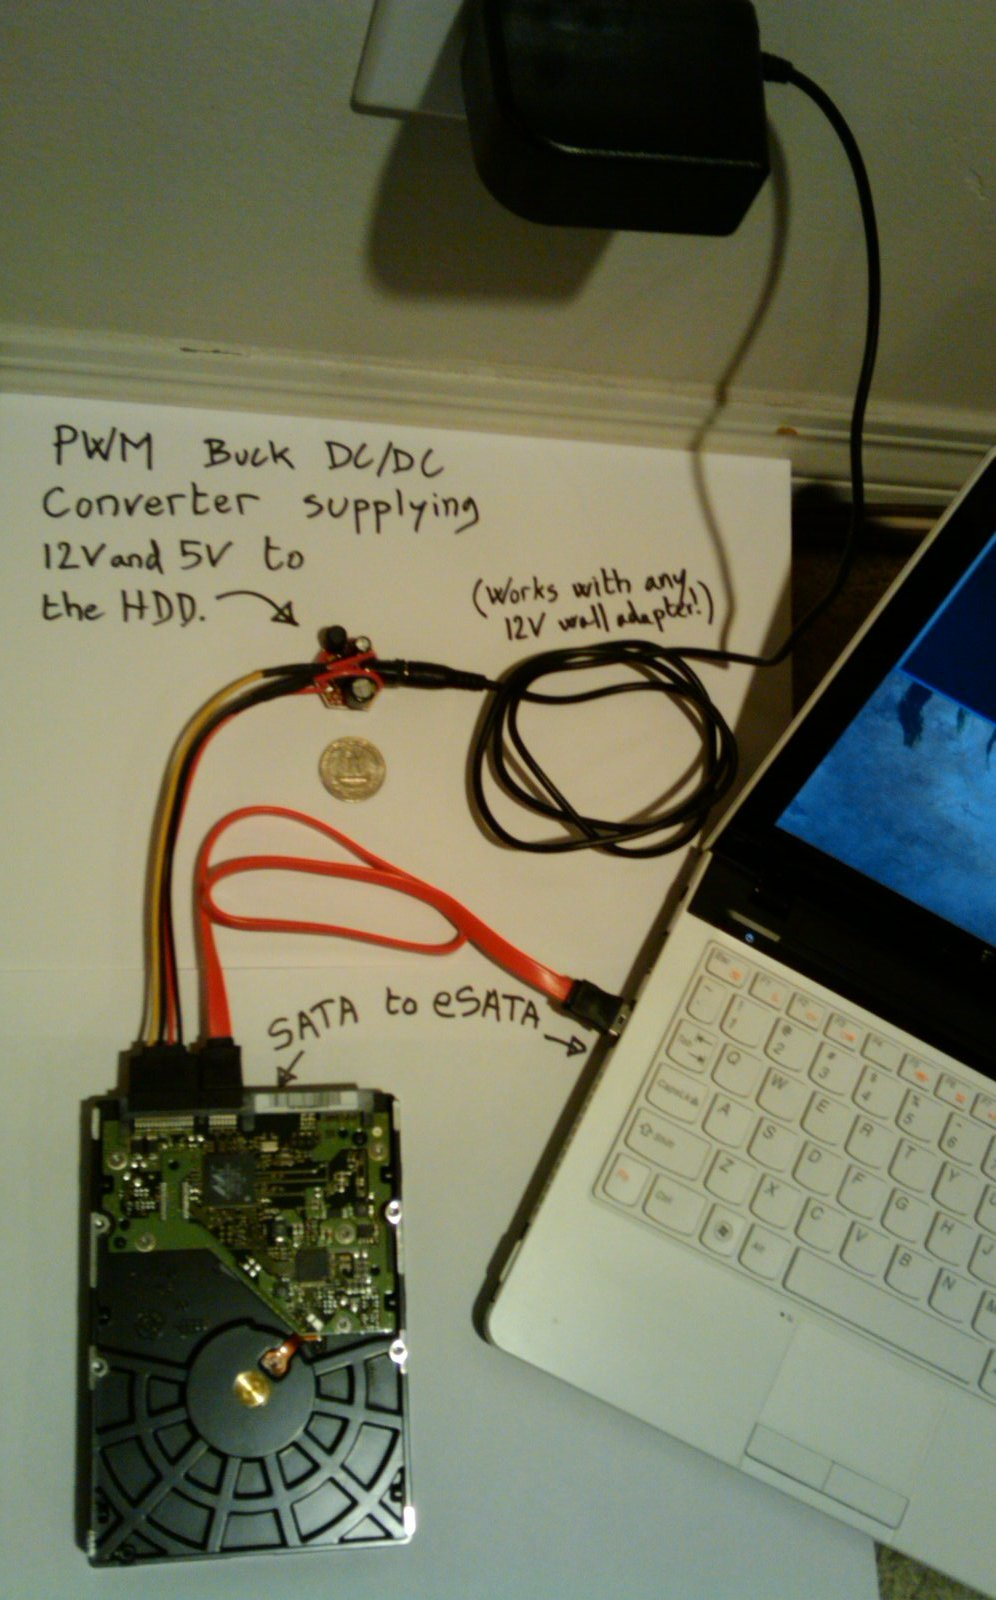 hight resolution of diy coin sized sata power module to replace a harddrive docking stationsata to usb wiring diagram